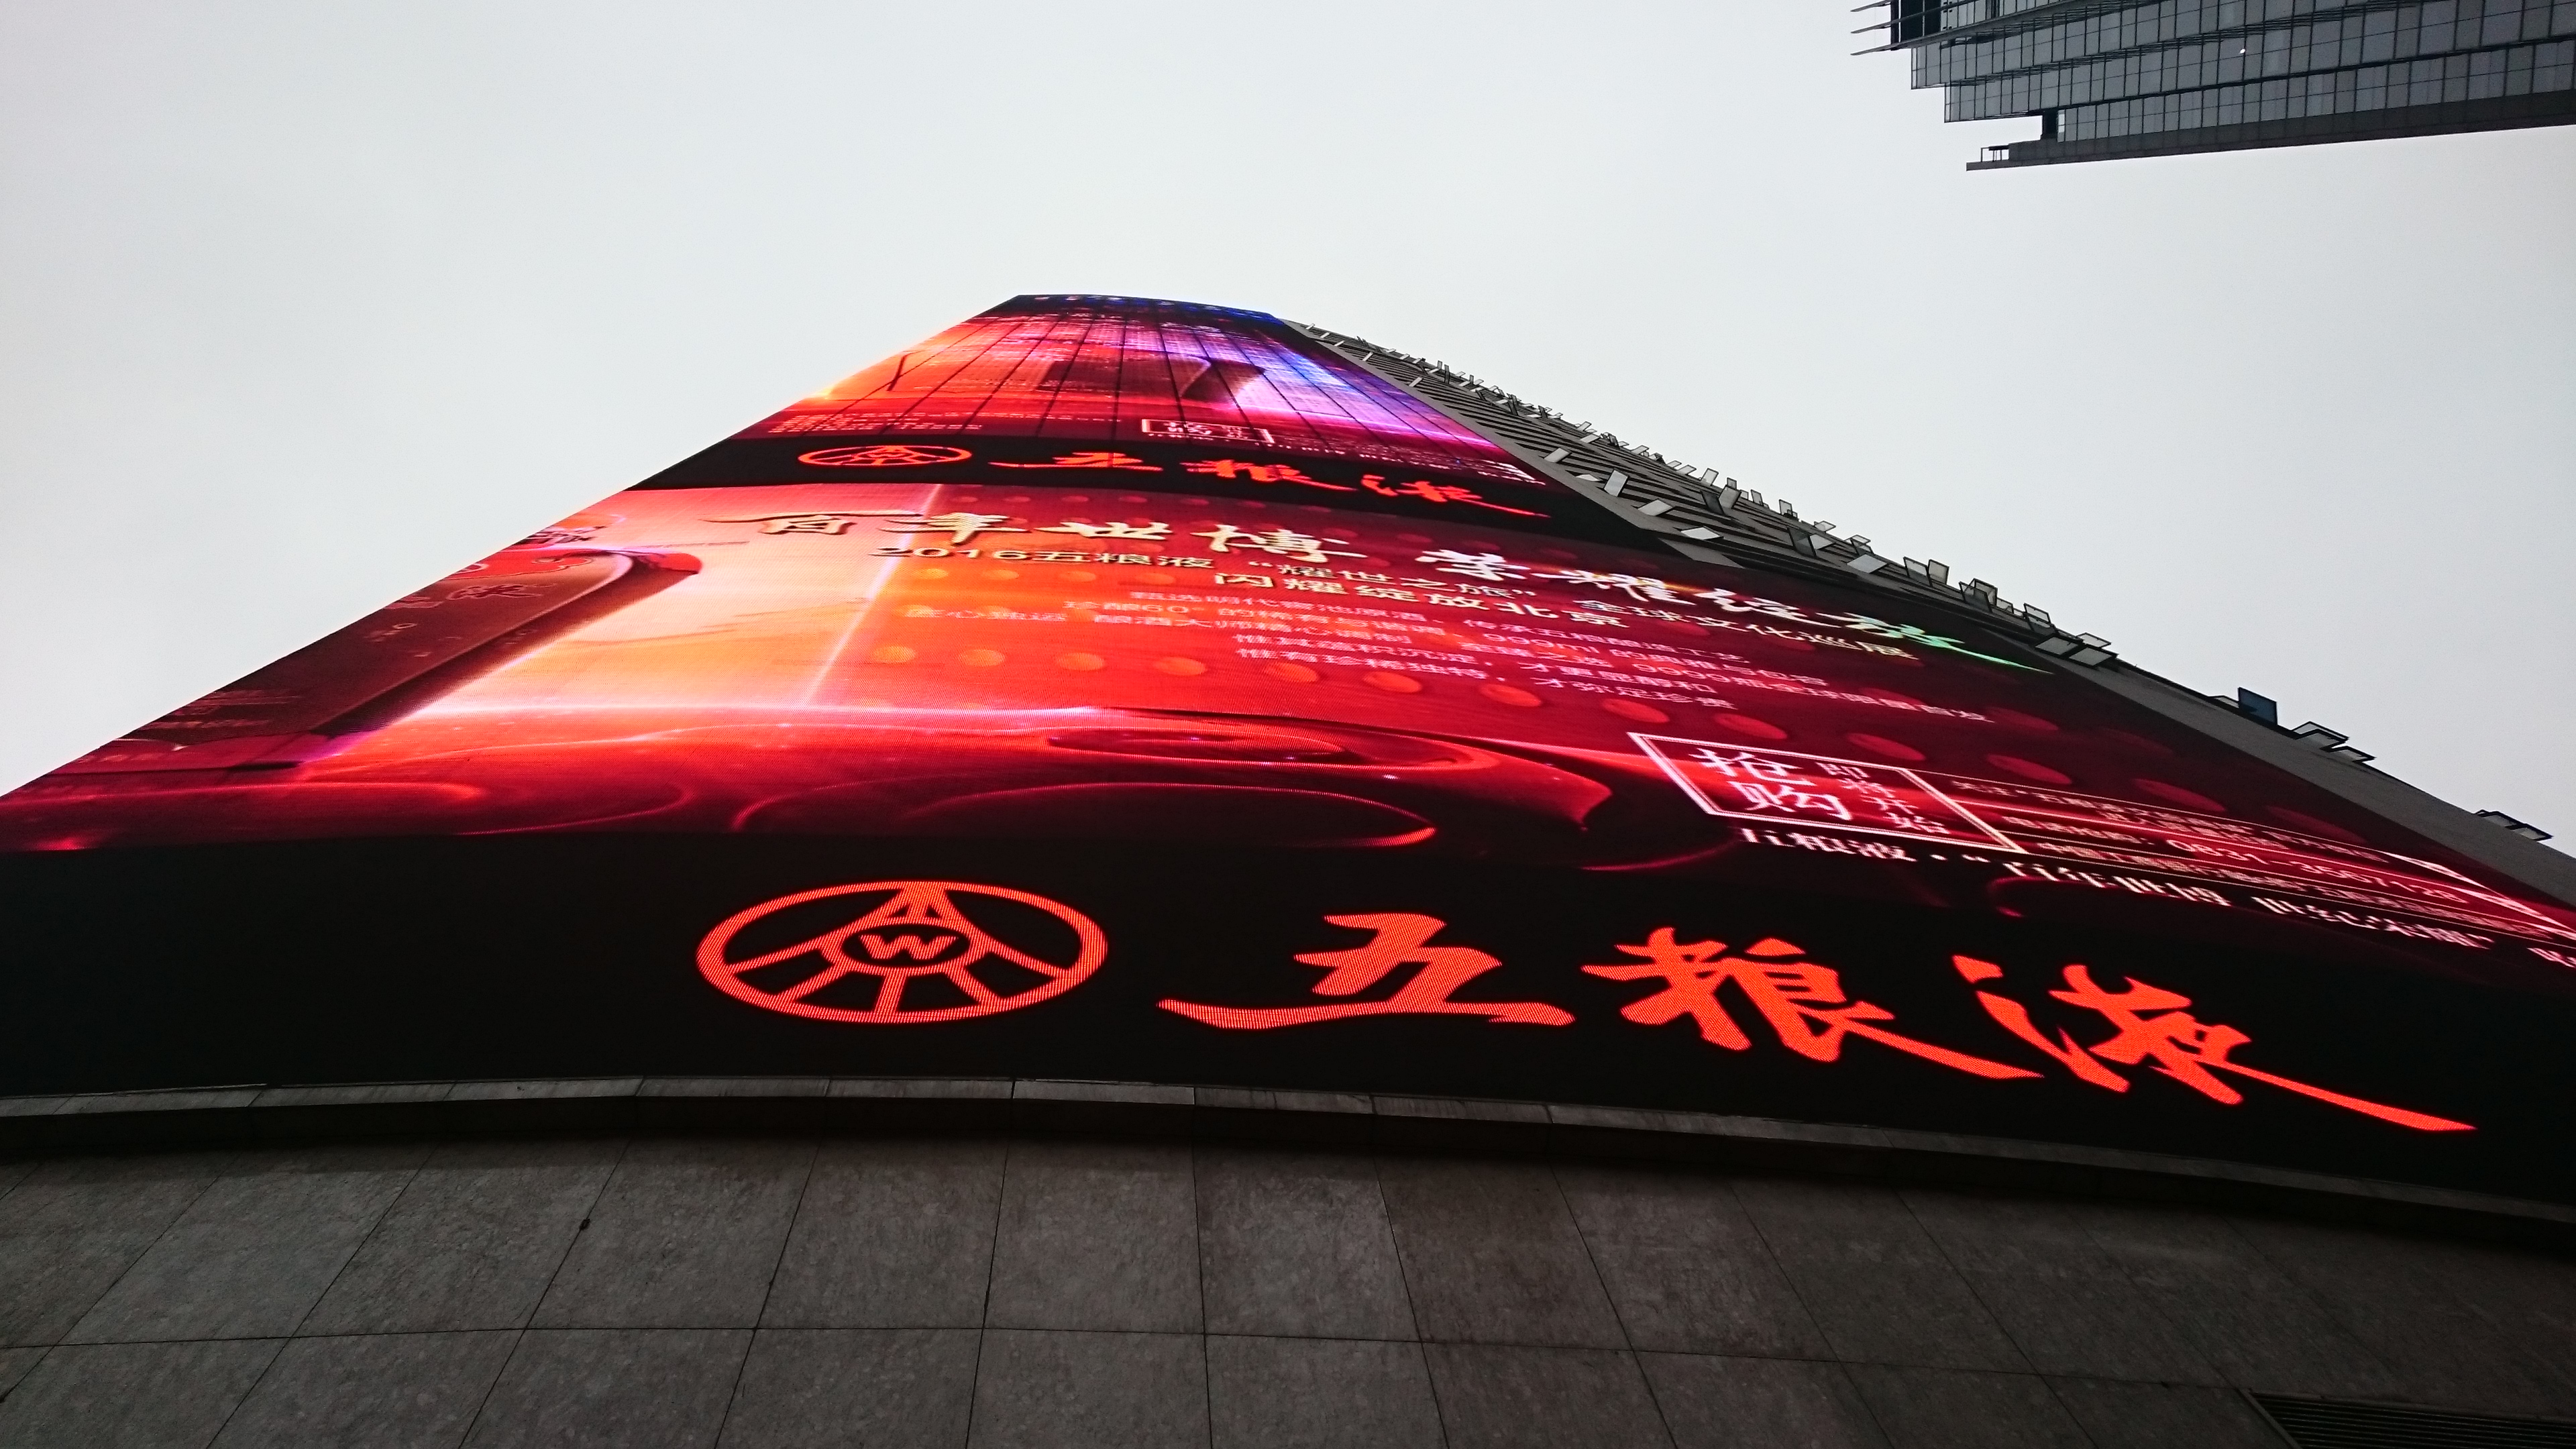 An urban media screen in Guanyinqiao Walking Street, Jiangbei District, one of the famous commercial streets in China integrating shopping, leisure, food, entertainment and fitness. Photo: Ian McArthur